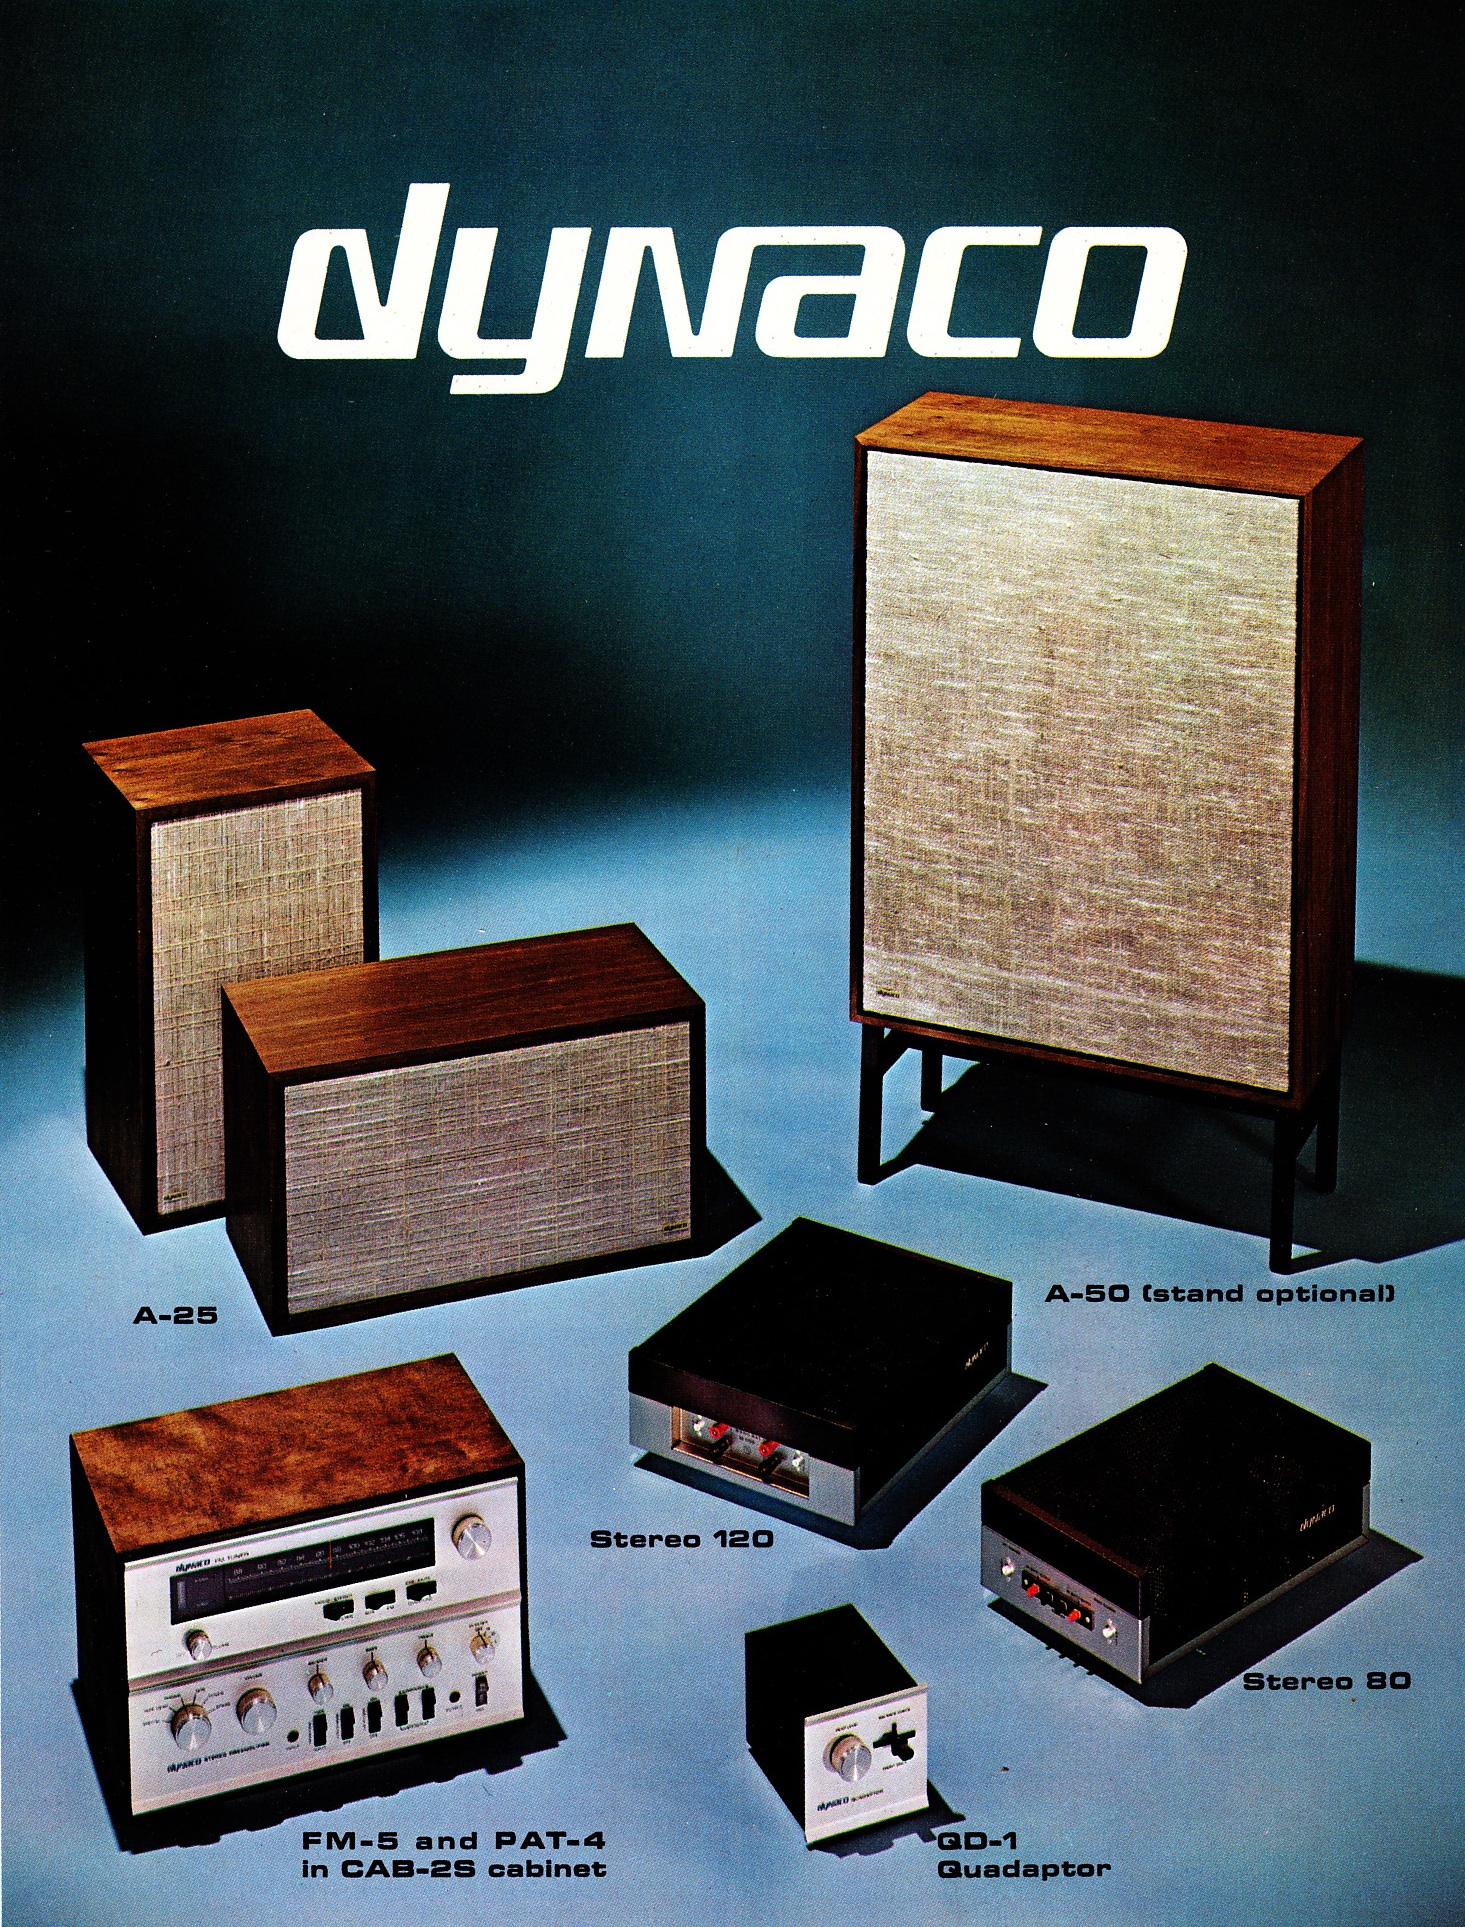 Yard Sale Speakers Spotter's Guide: 3: Dynaco | Preservation